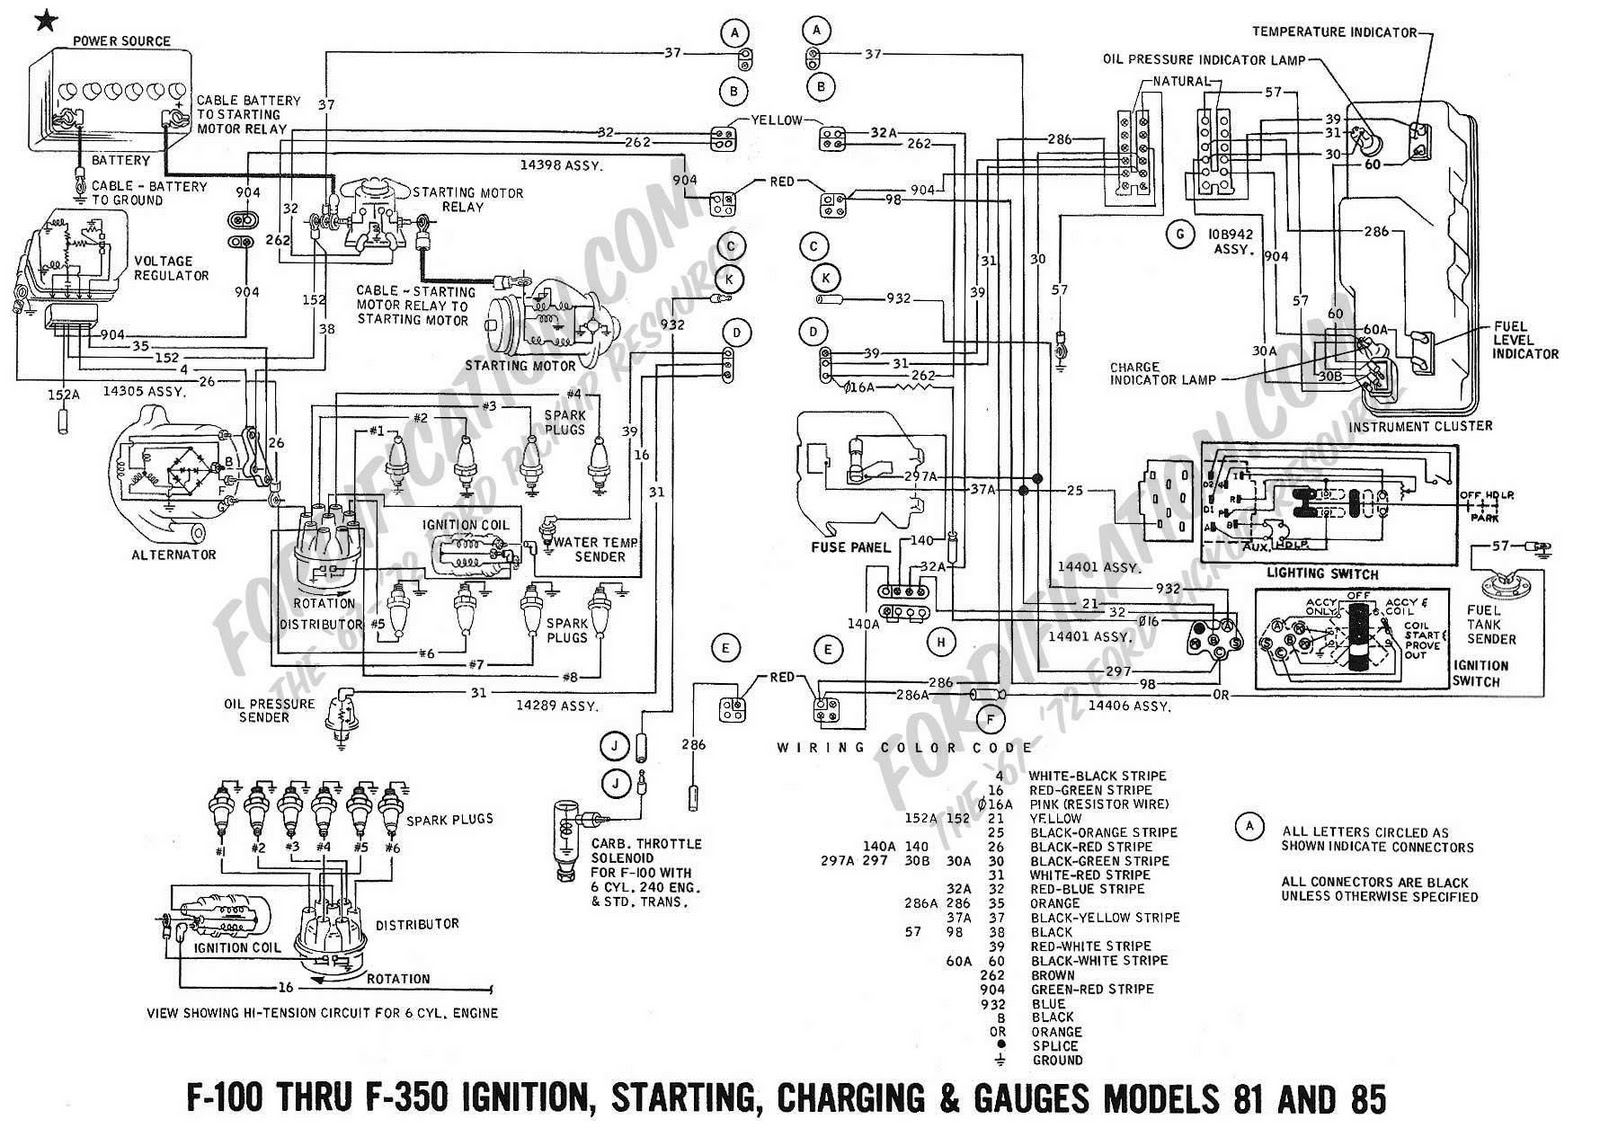 66 Ford F100 Wiring Diagram Library Kawasaki Zx7r Hecho 1968 Color Diagrams Box 65 1966